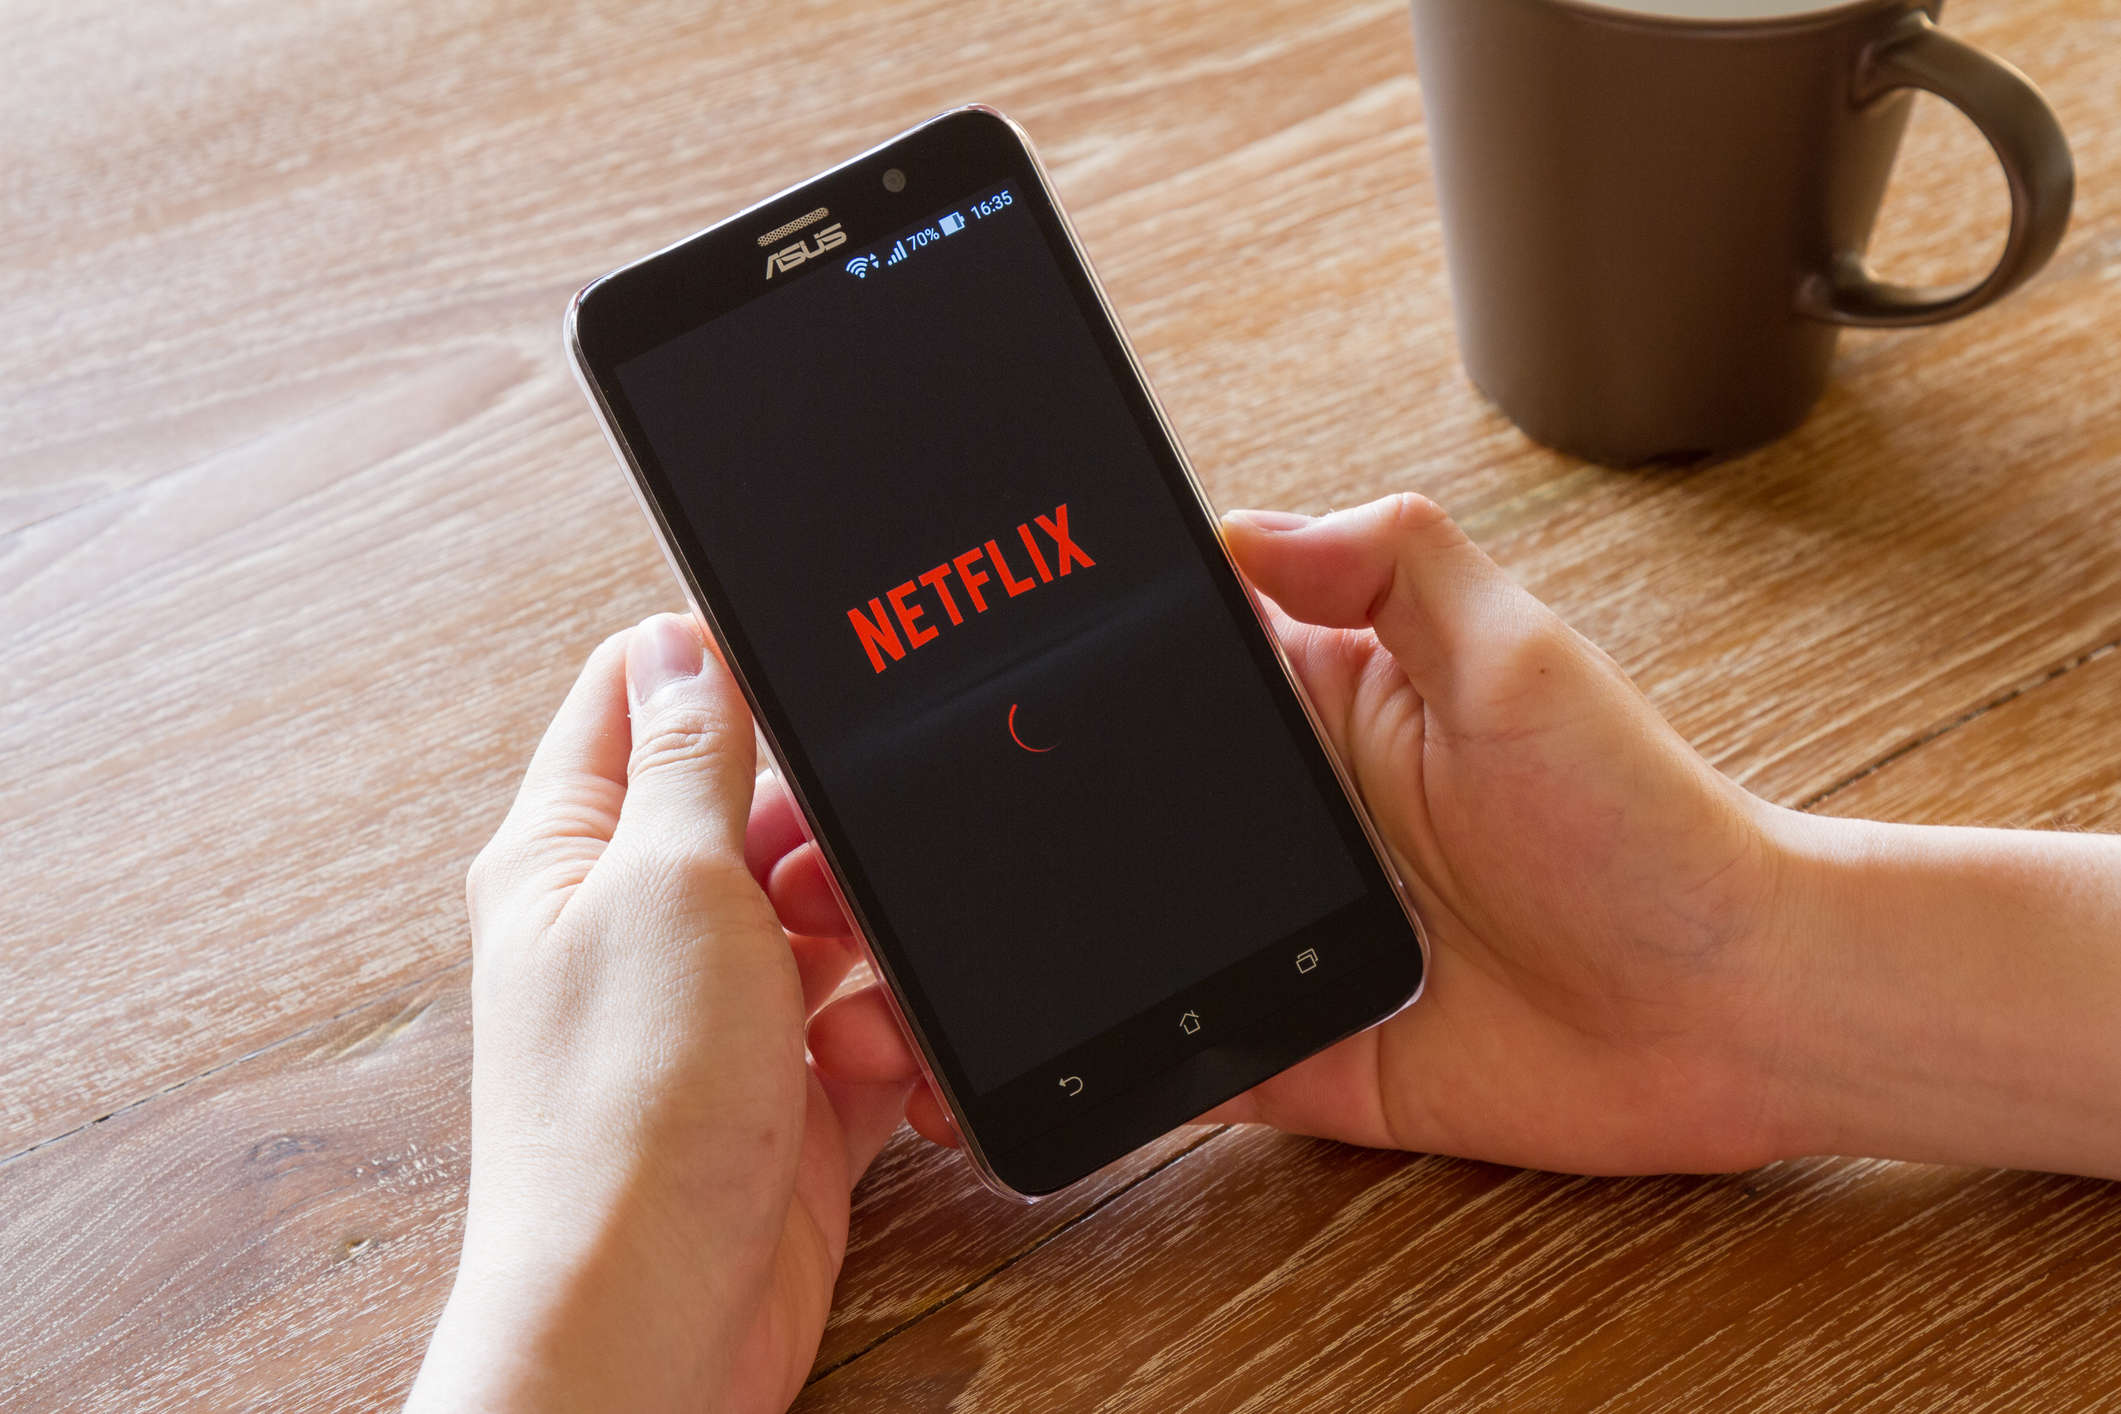 Netflix announced that it would reduce the bitrate of its video streams for a month.